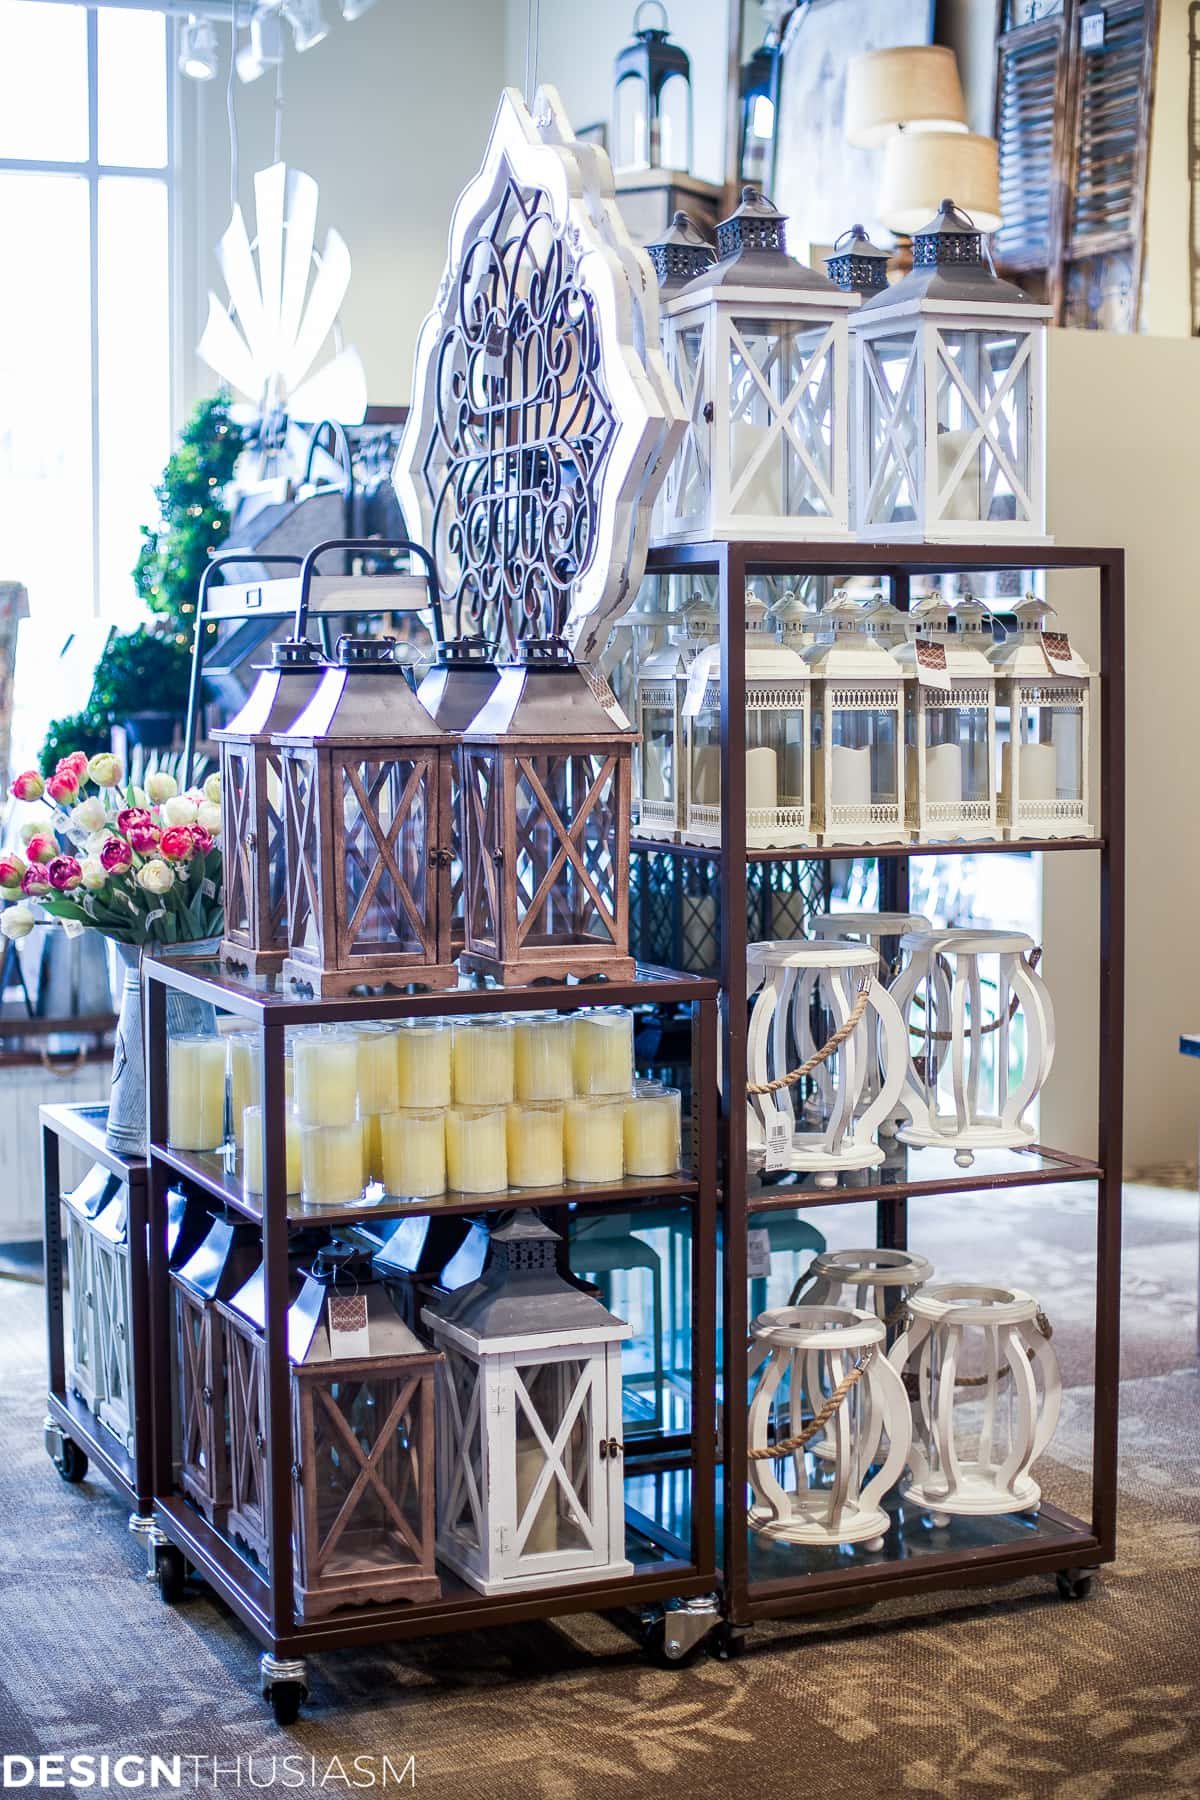 Awesome decorative items - mother daughter shopping spree - designthusiasm.com